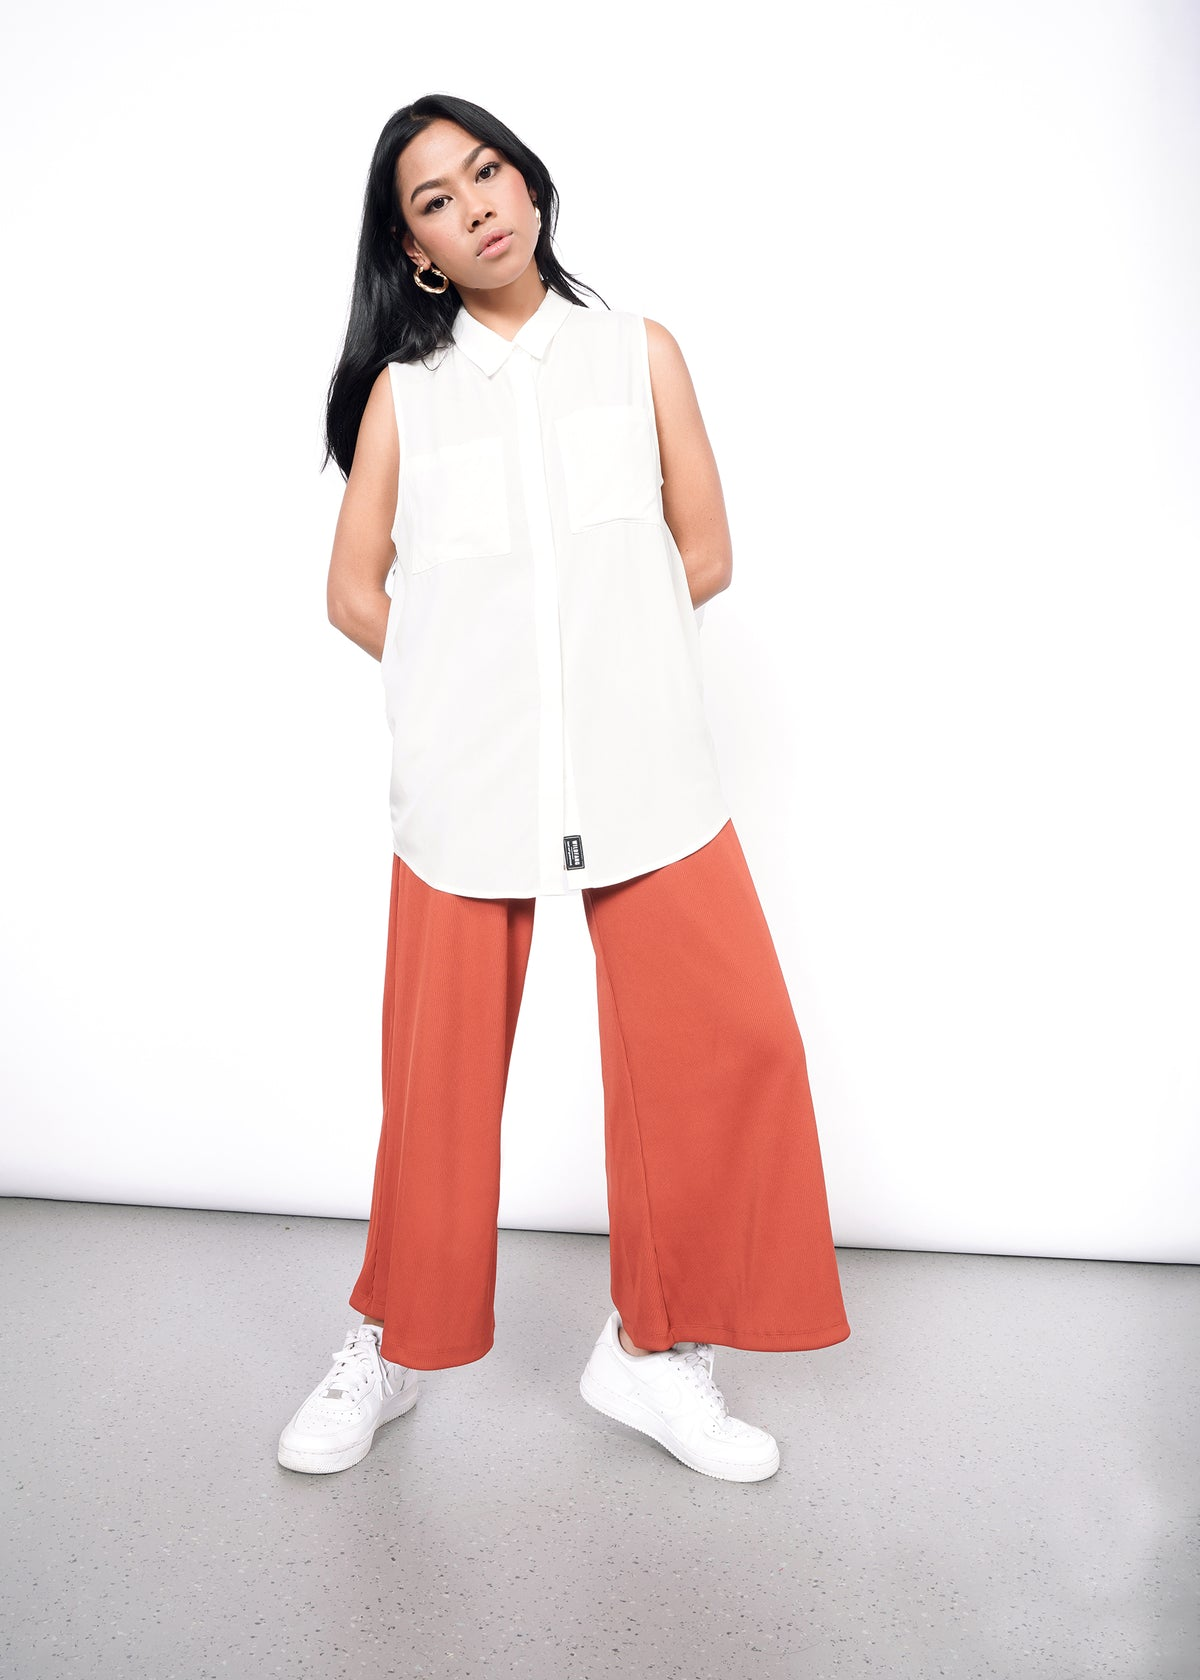 Model wearing white sleeveless drapey button up shirt in size XS, with orange pants and white sneakers